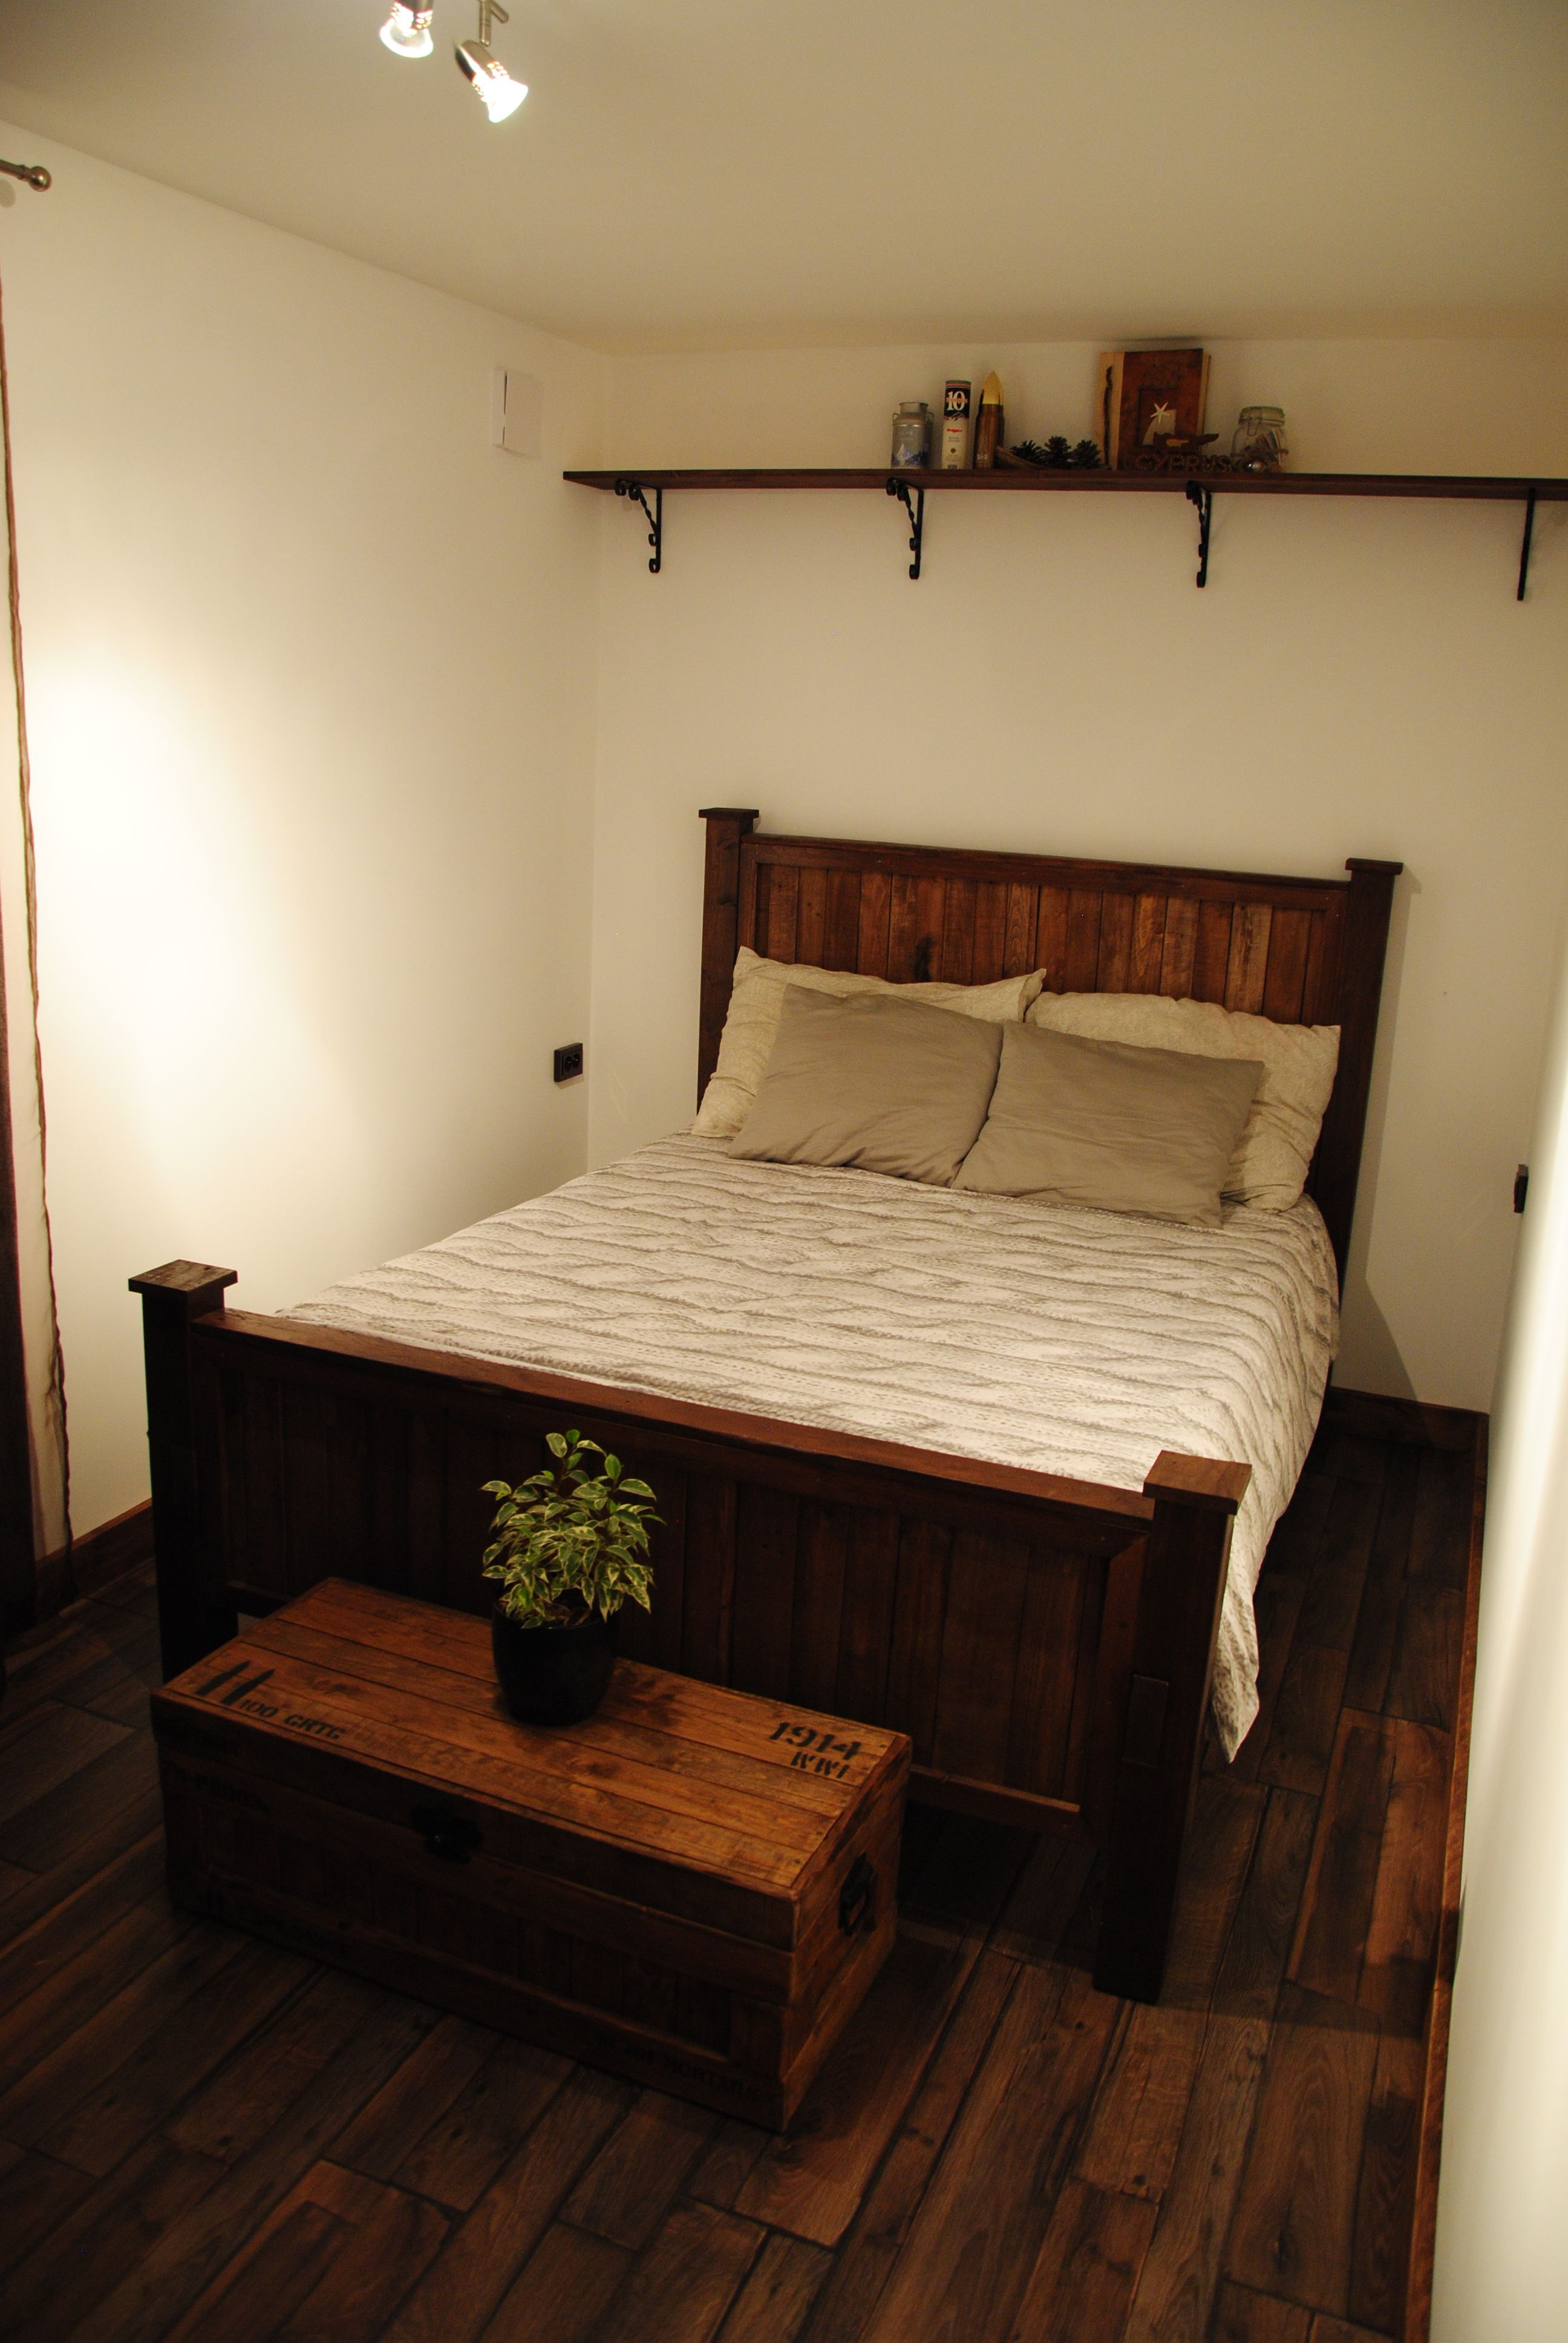 pallet king size bed King size bed, Bed, Home decor